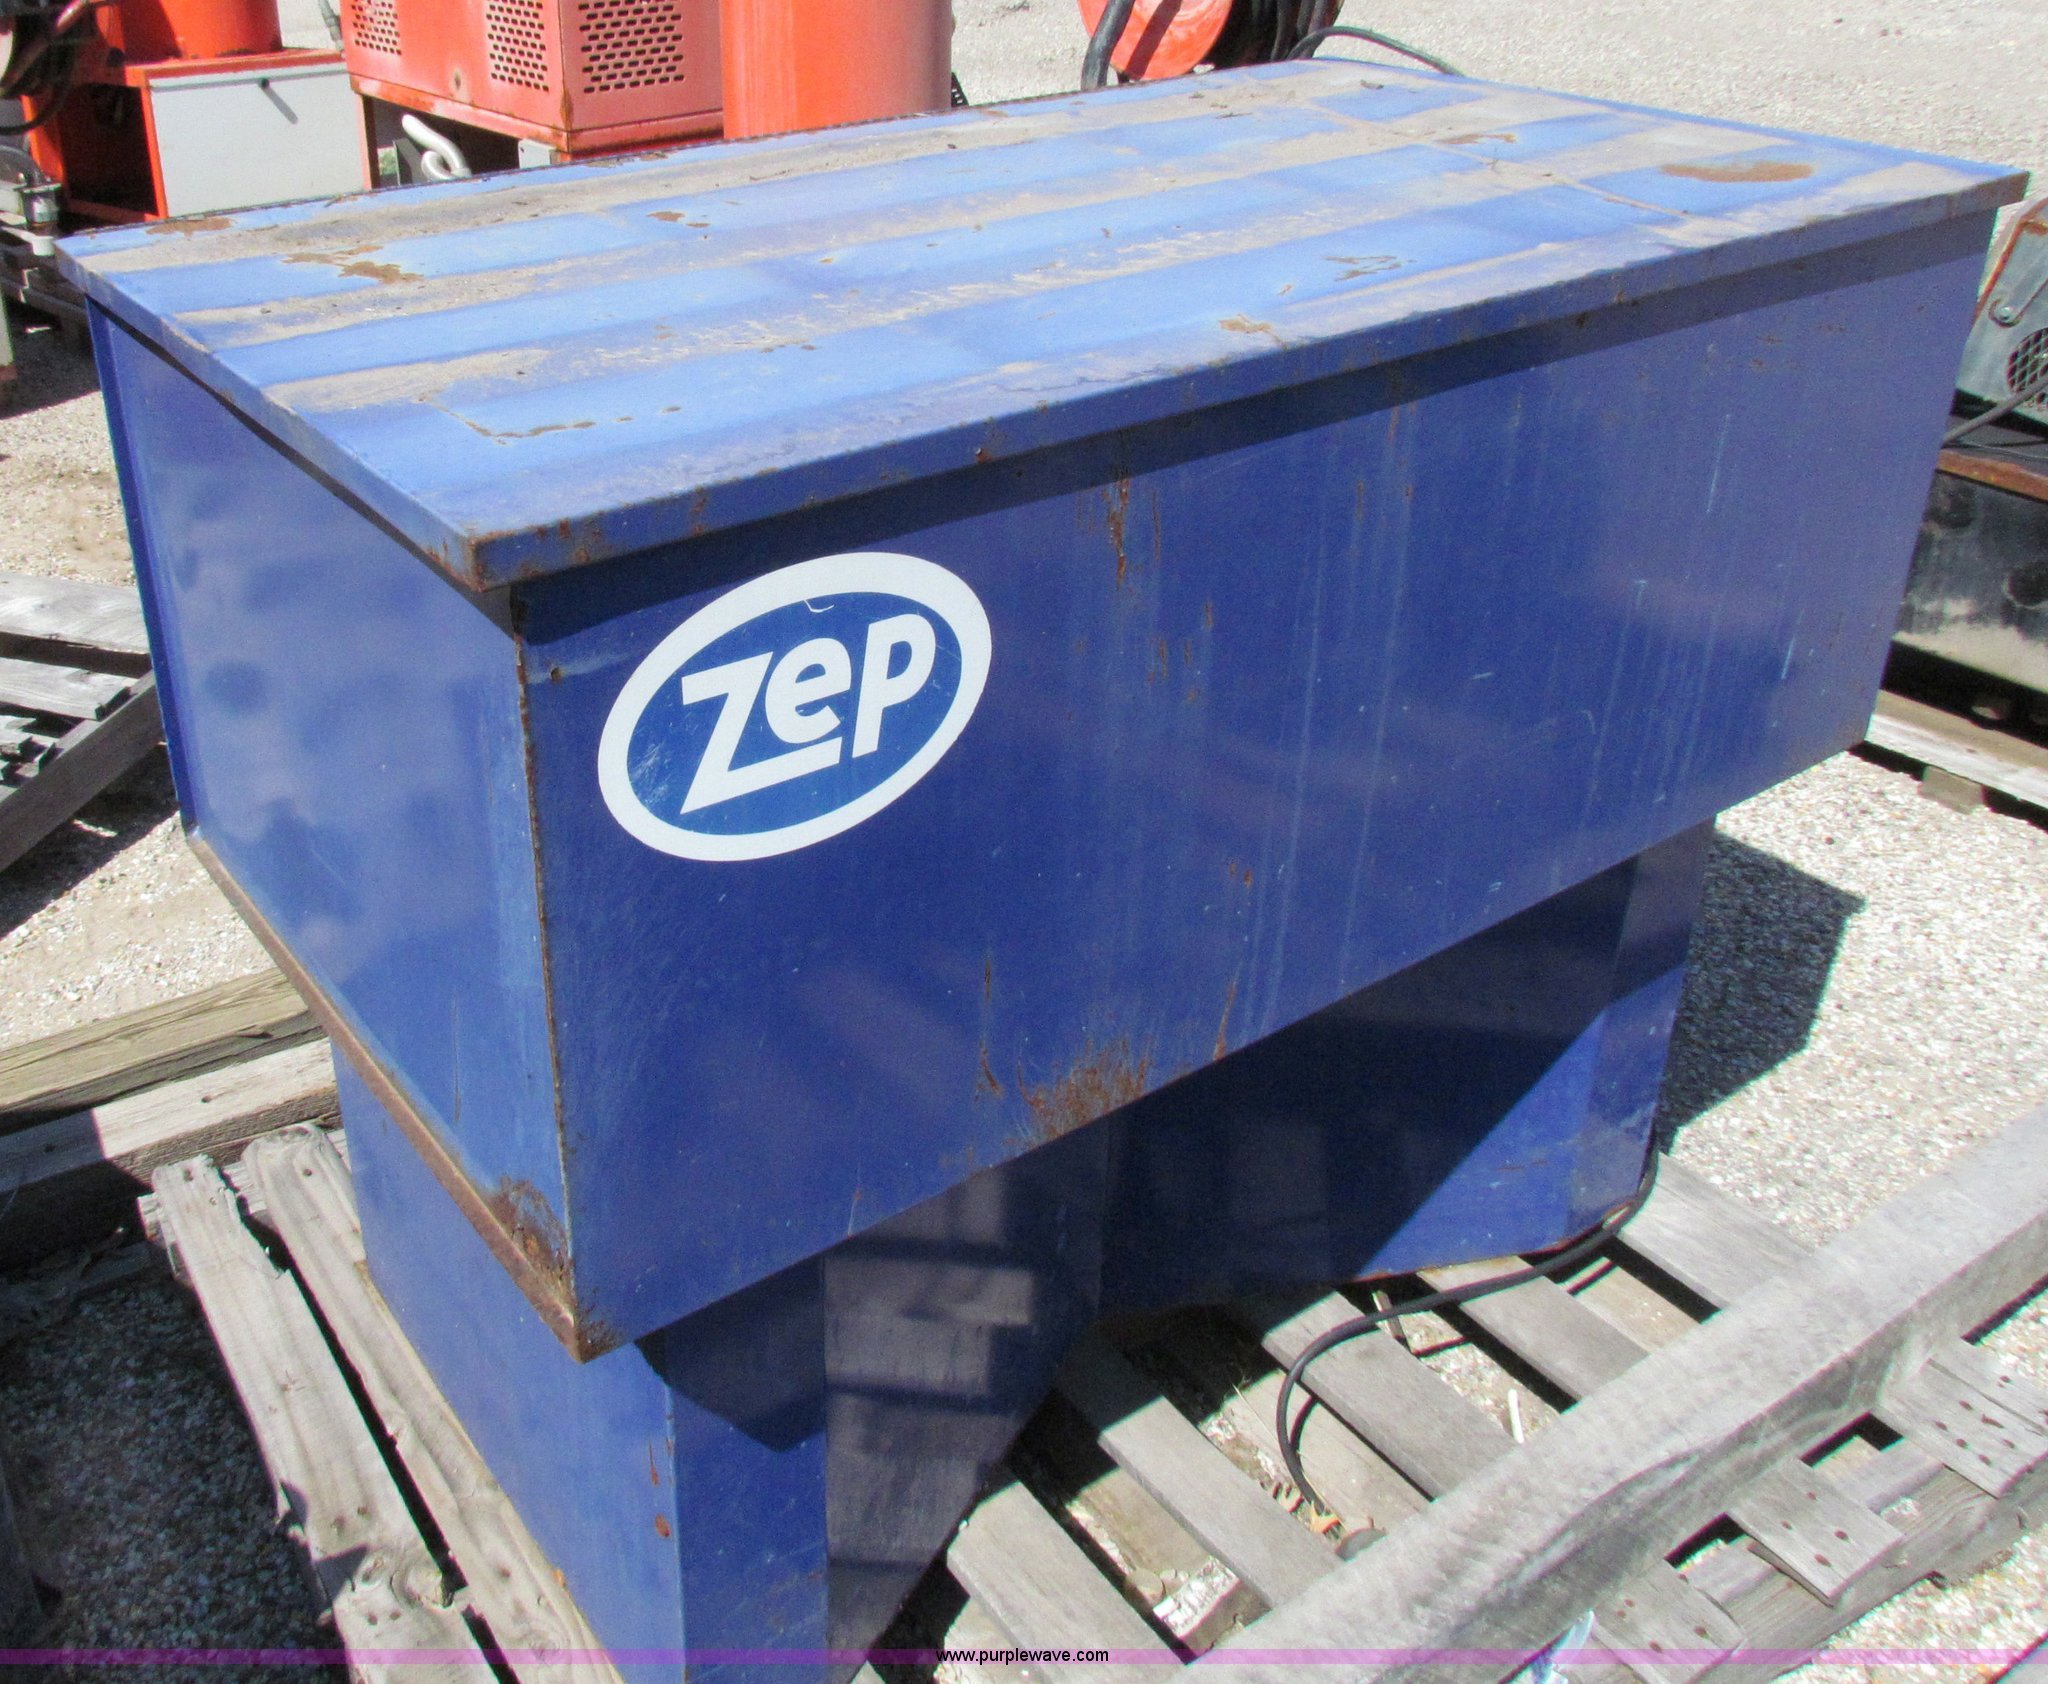 Zep 906201 parts washer | Item N9238 | SOLD! Thursday Octobe